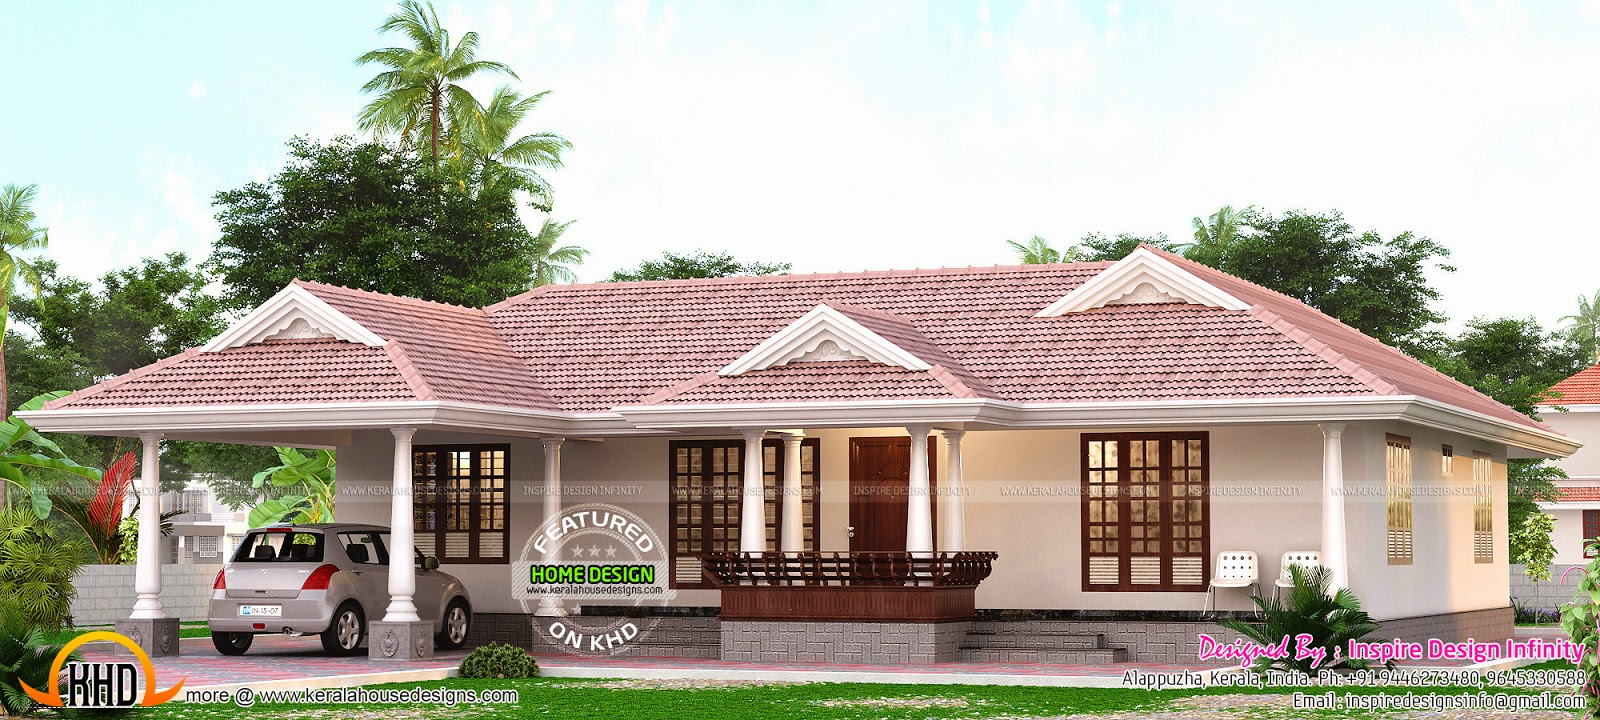 Kerala model single storied home kerala home design and for Three bedroom house plans kerala style